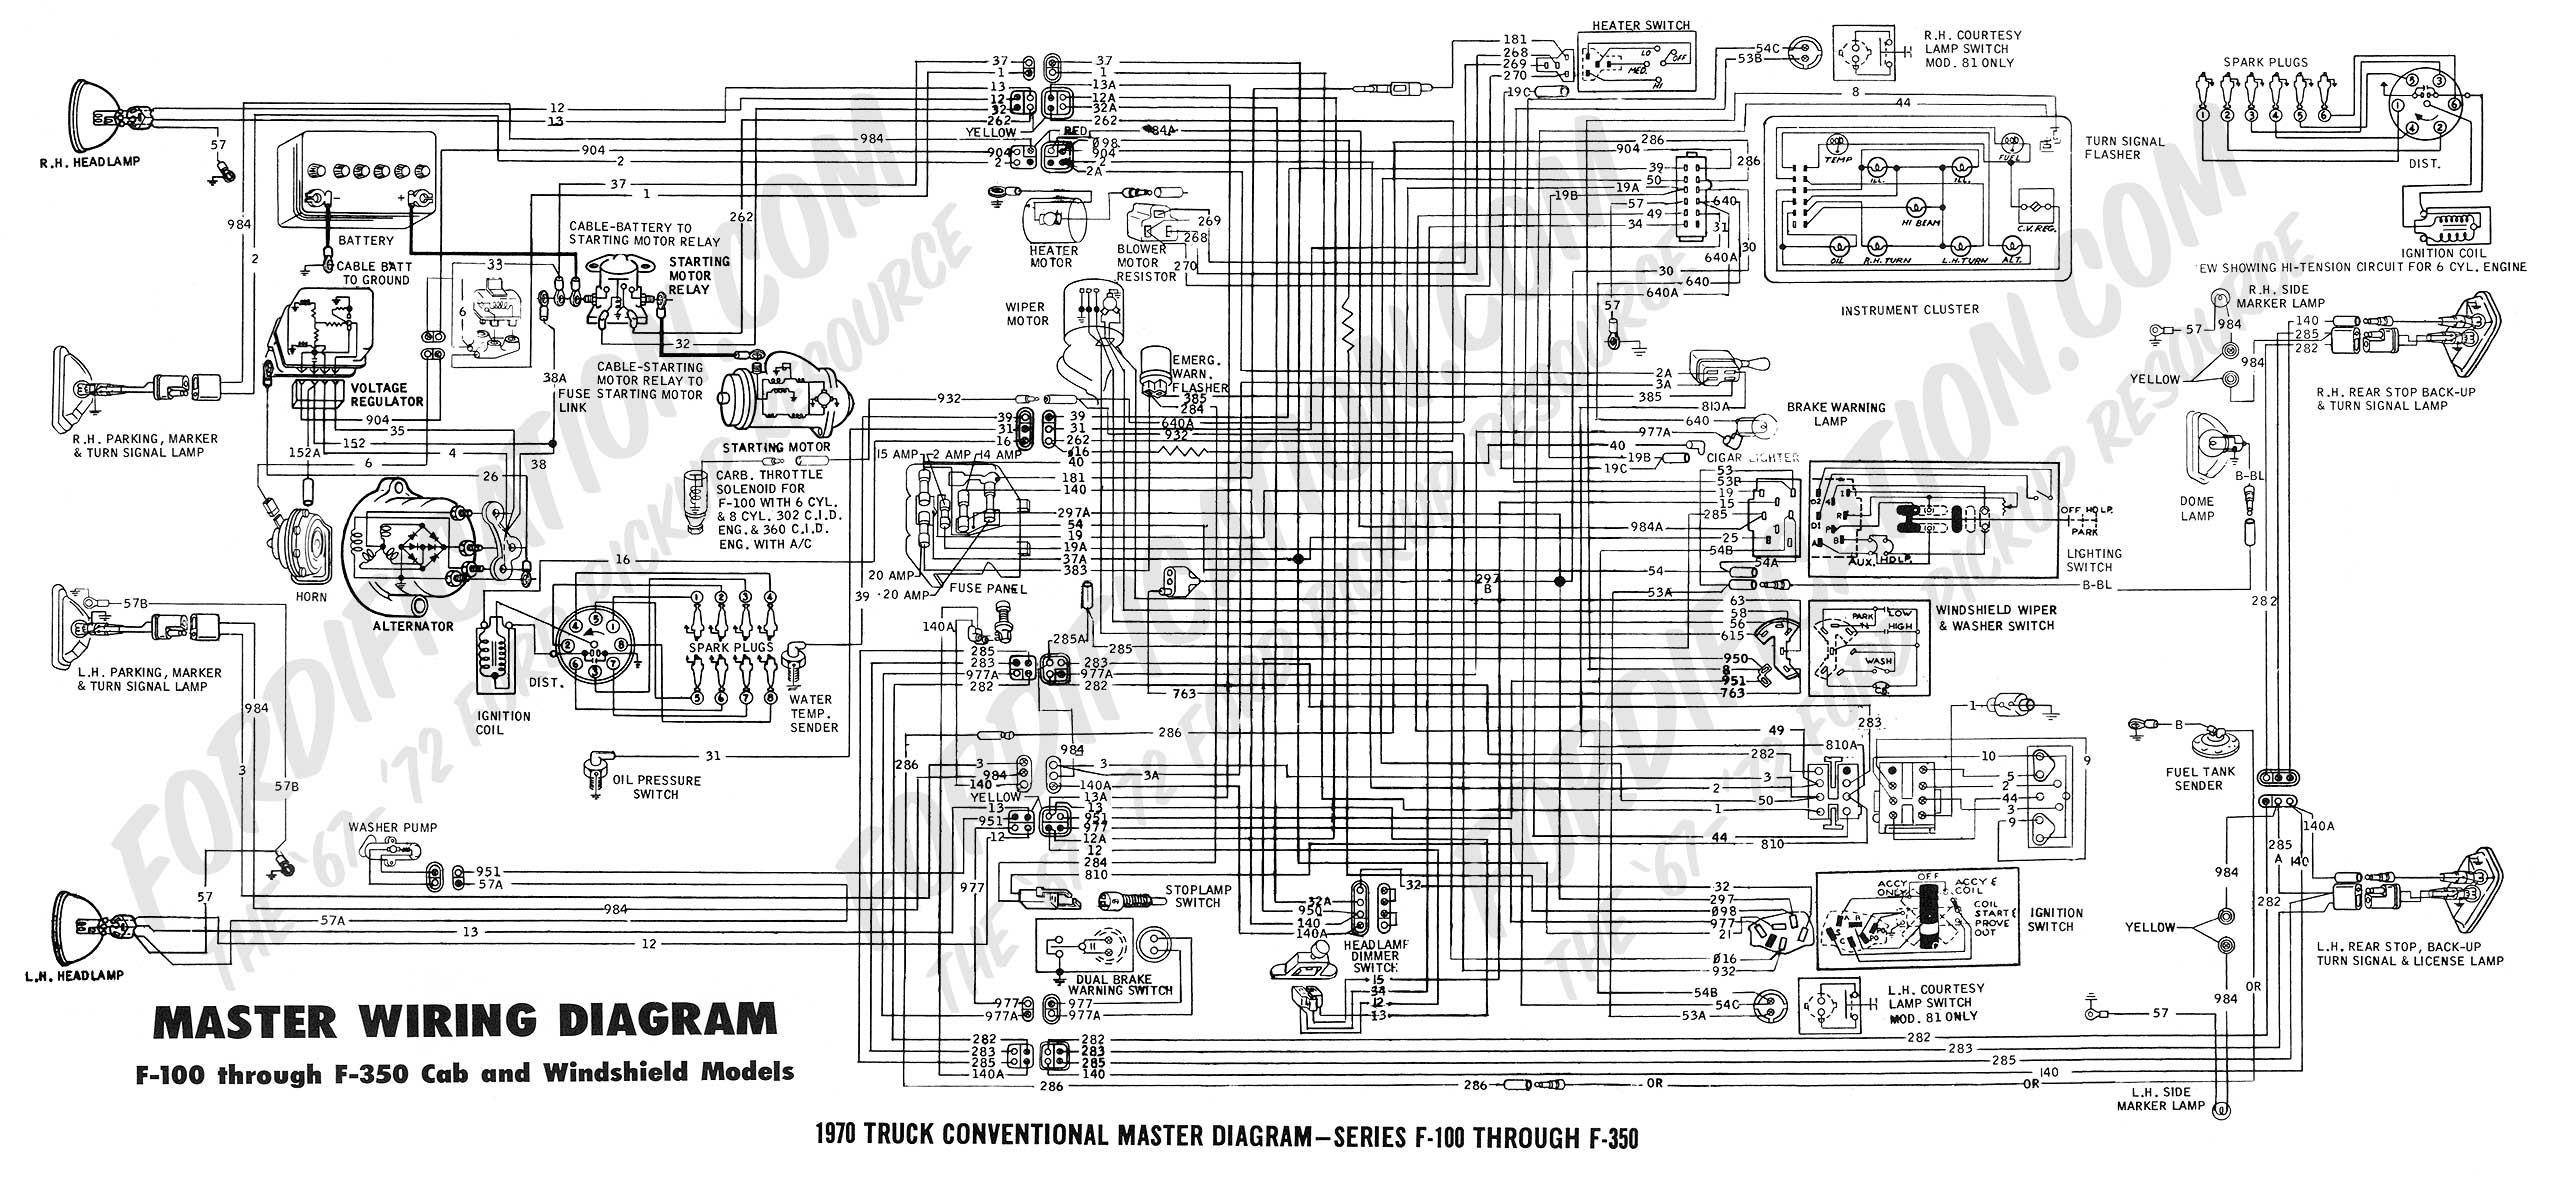 wiring diagram 70_master 2005 ford f 150 ke wiring diagram wiring diagram simonand Ford F-350 Trailer Wiring Diagram at alyssarenee.co